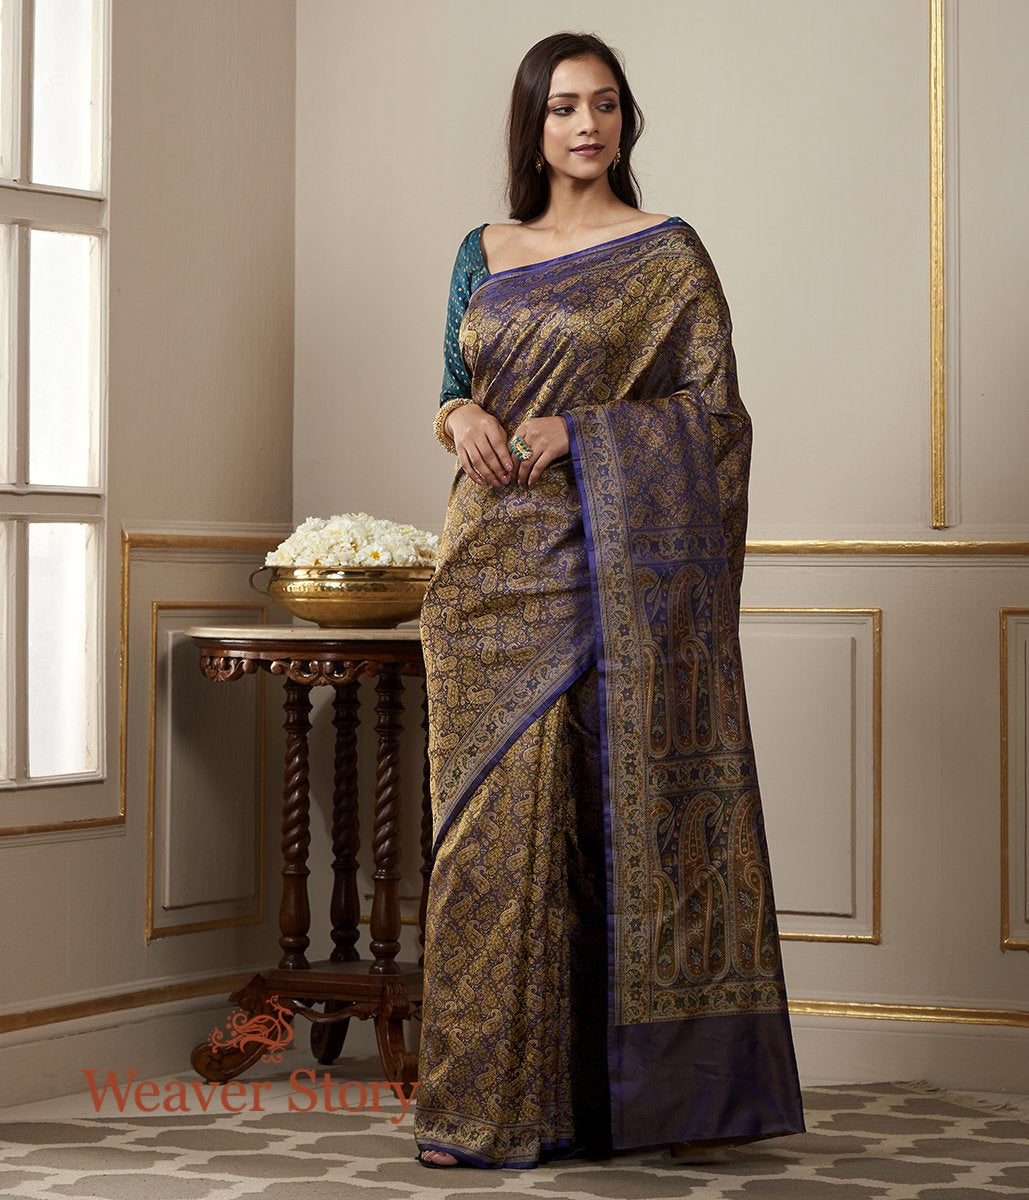 Handwoven Blue and Purple Dual Tone Jamawar Tanchoi Saree with Paisleys